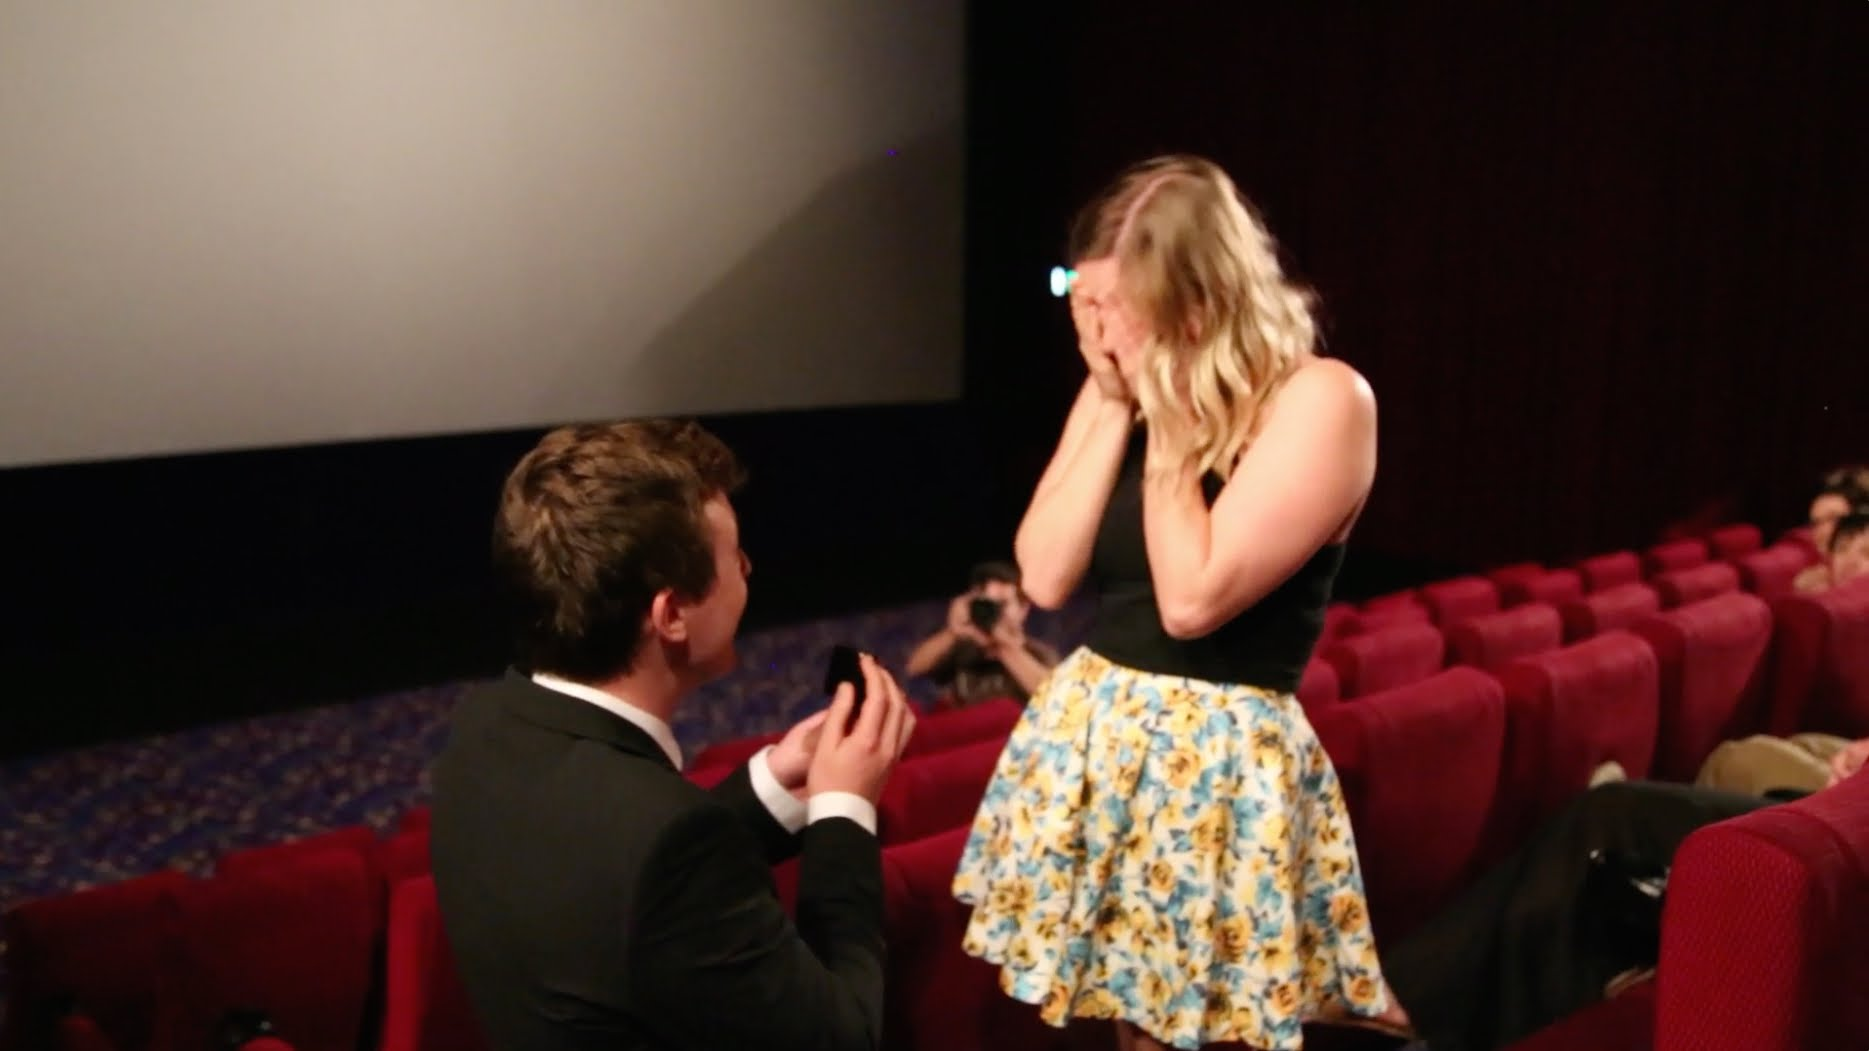 Video: Guys like these raise the bar, rest of the boyfriends suffer!